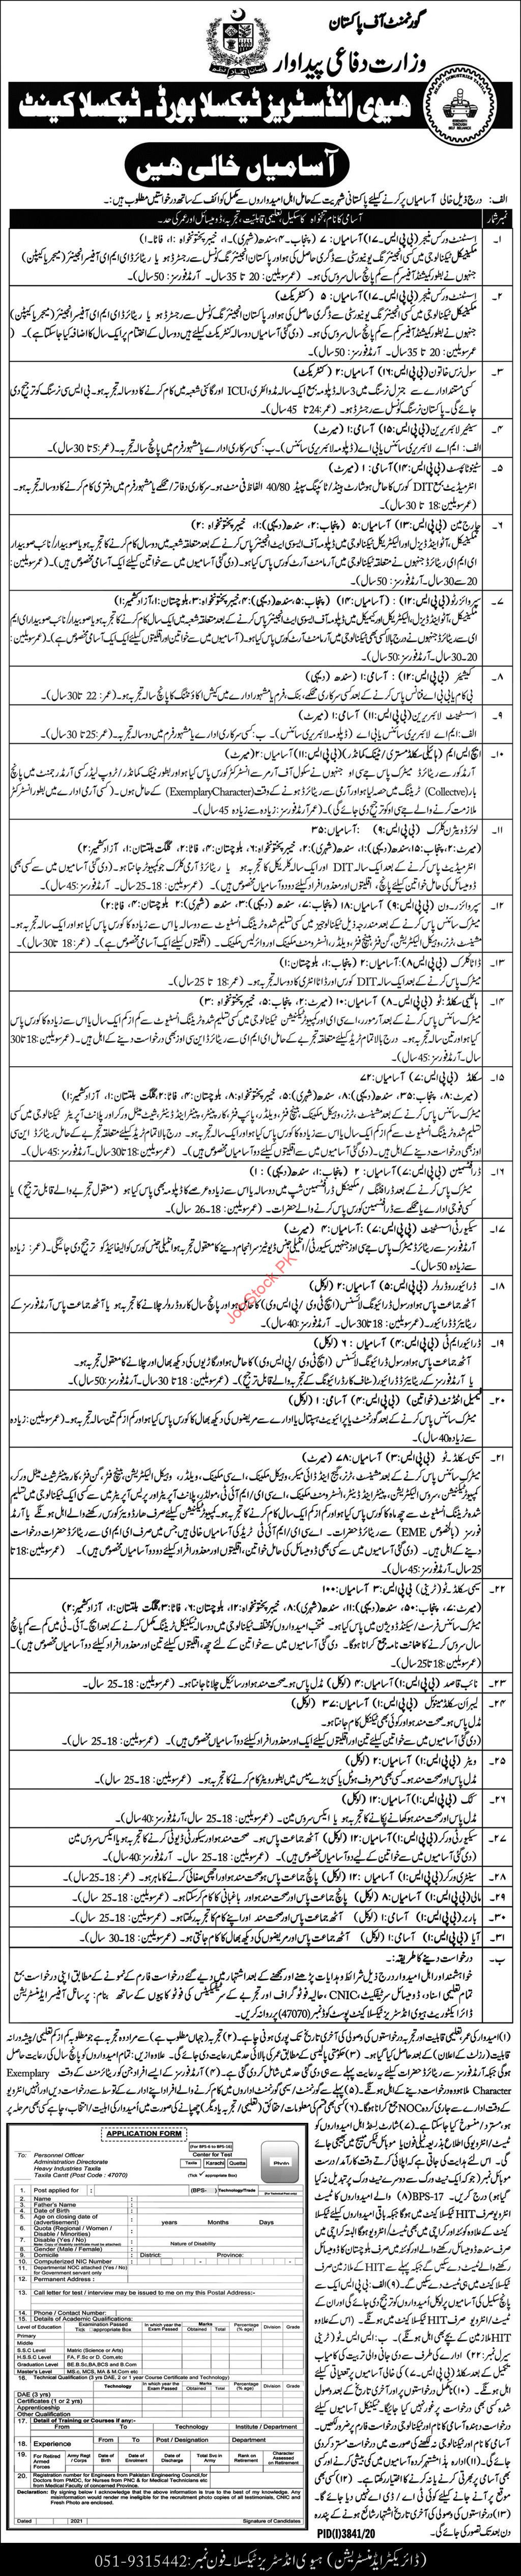 Ministry Of Defence Production Heavy Industries Taxilla Board Jobs 2021